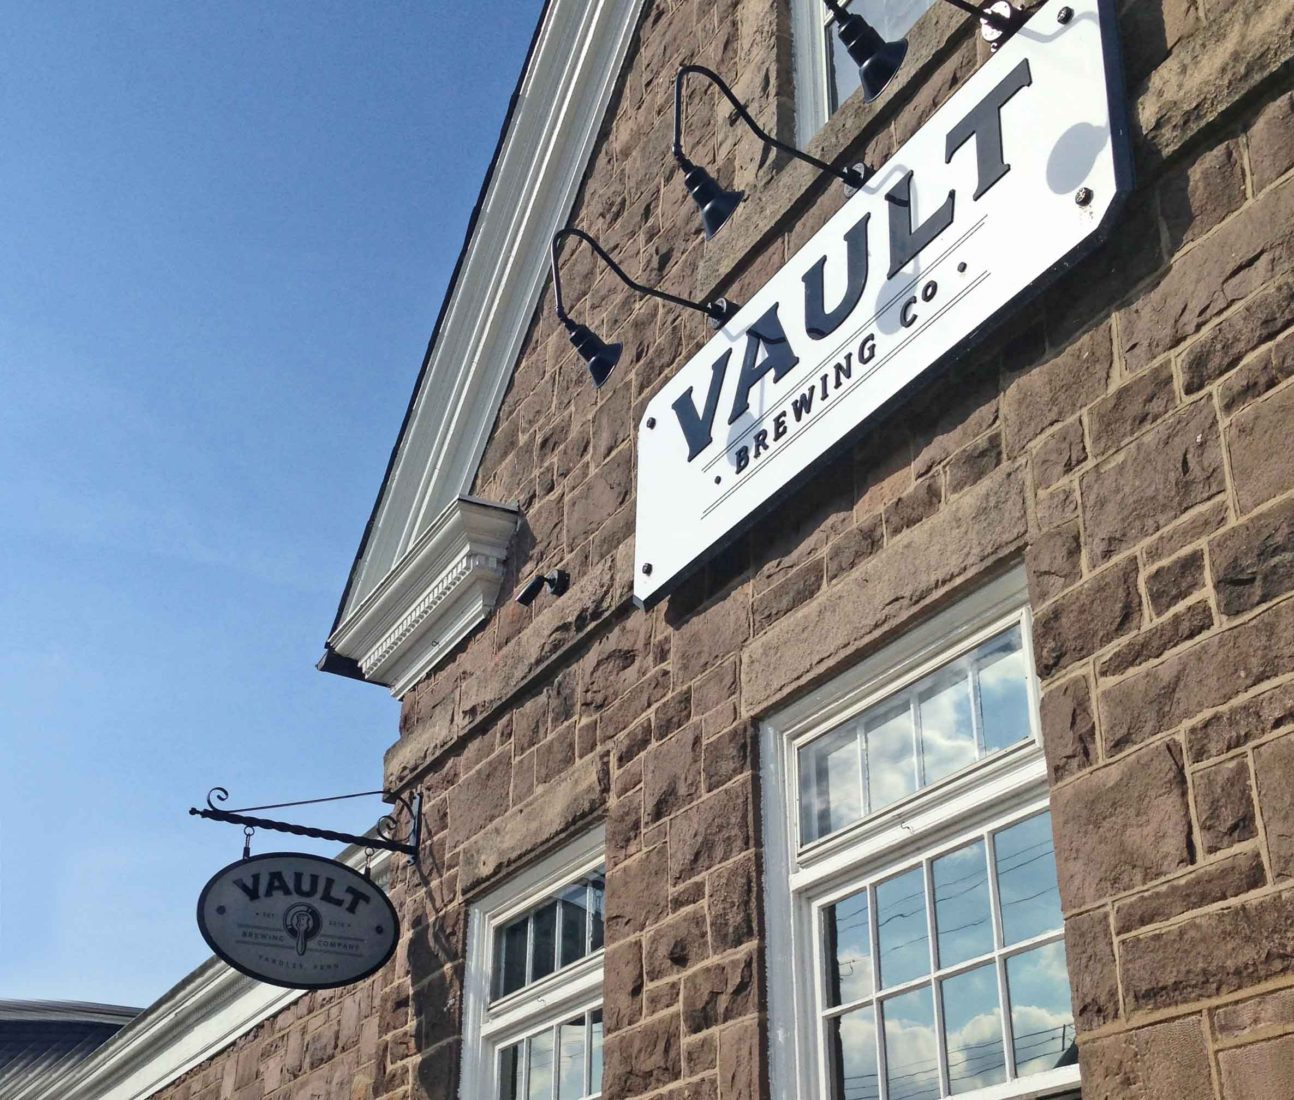 166. The Vault Brewery, Yardley PA 2013